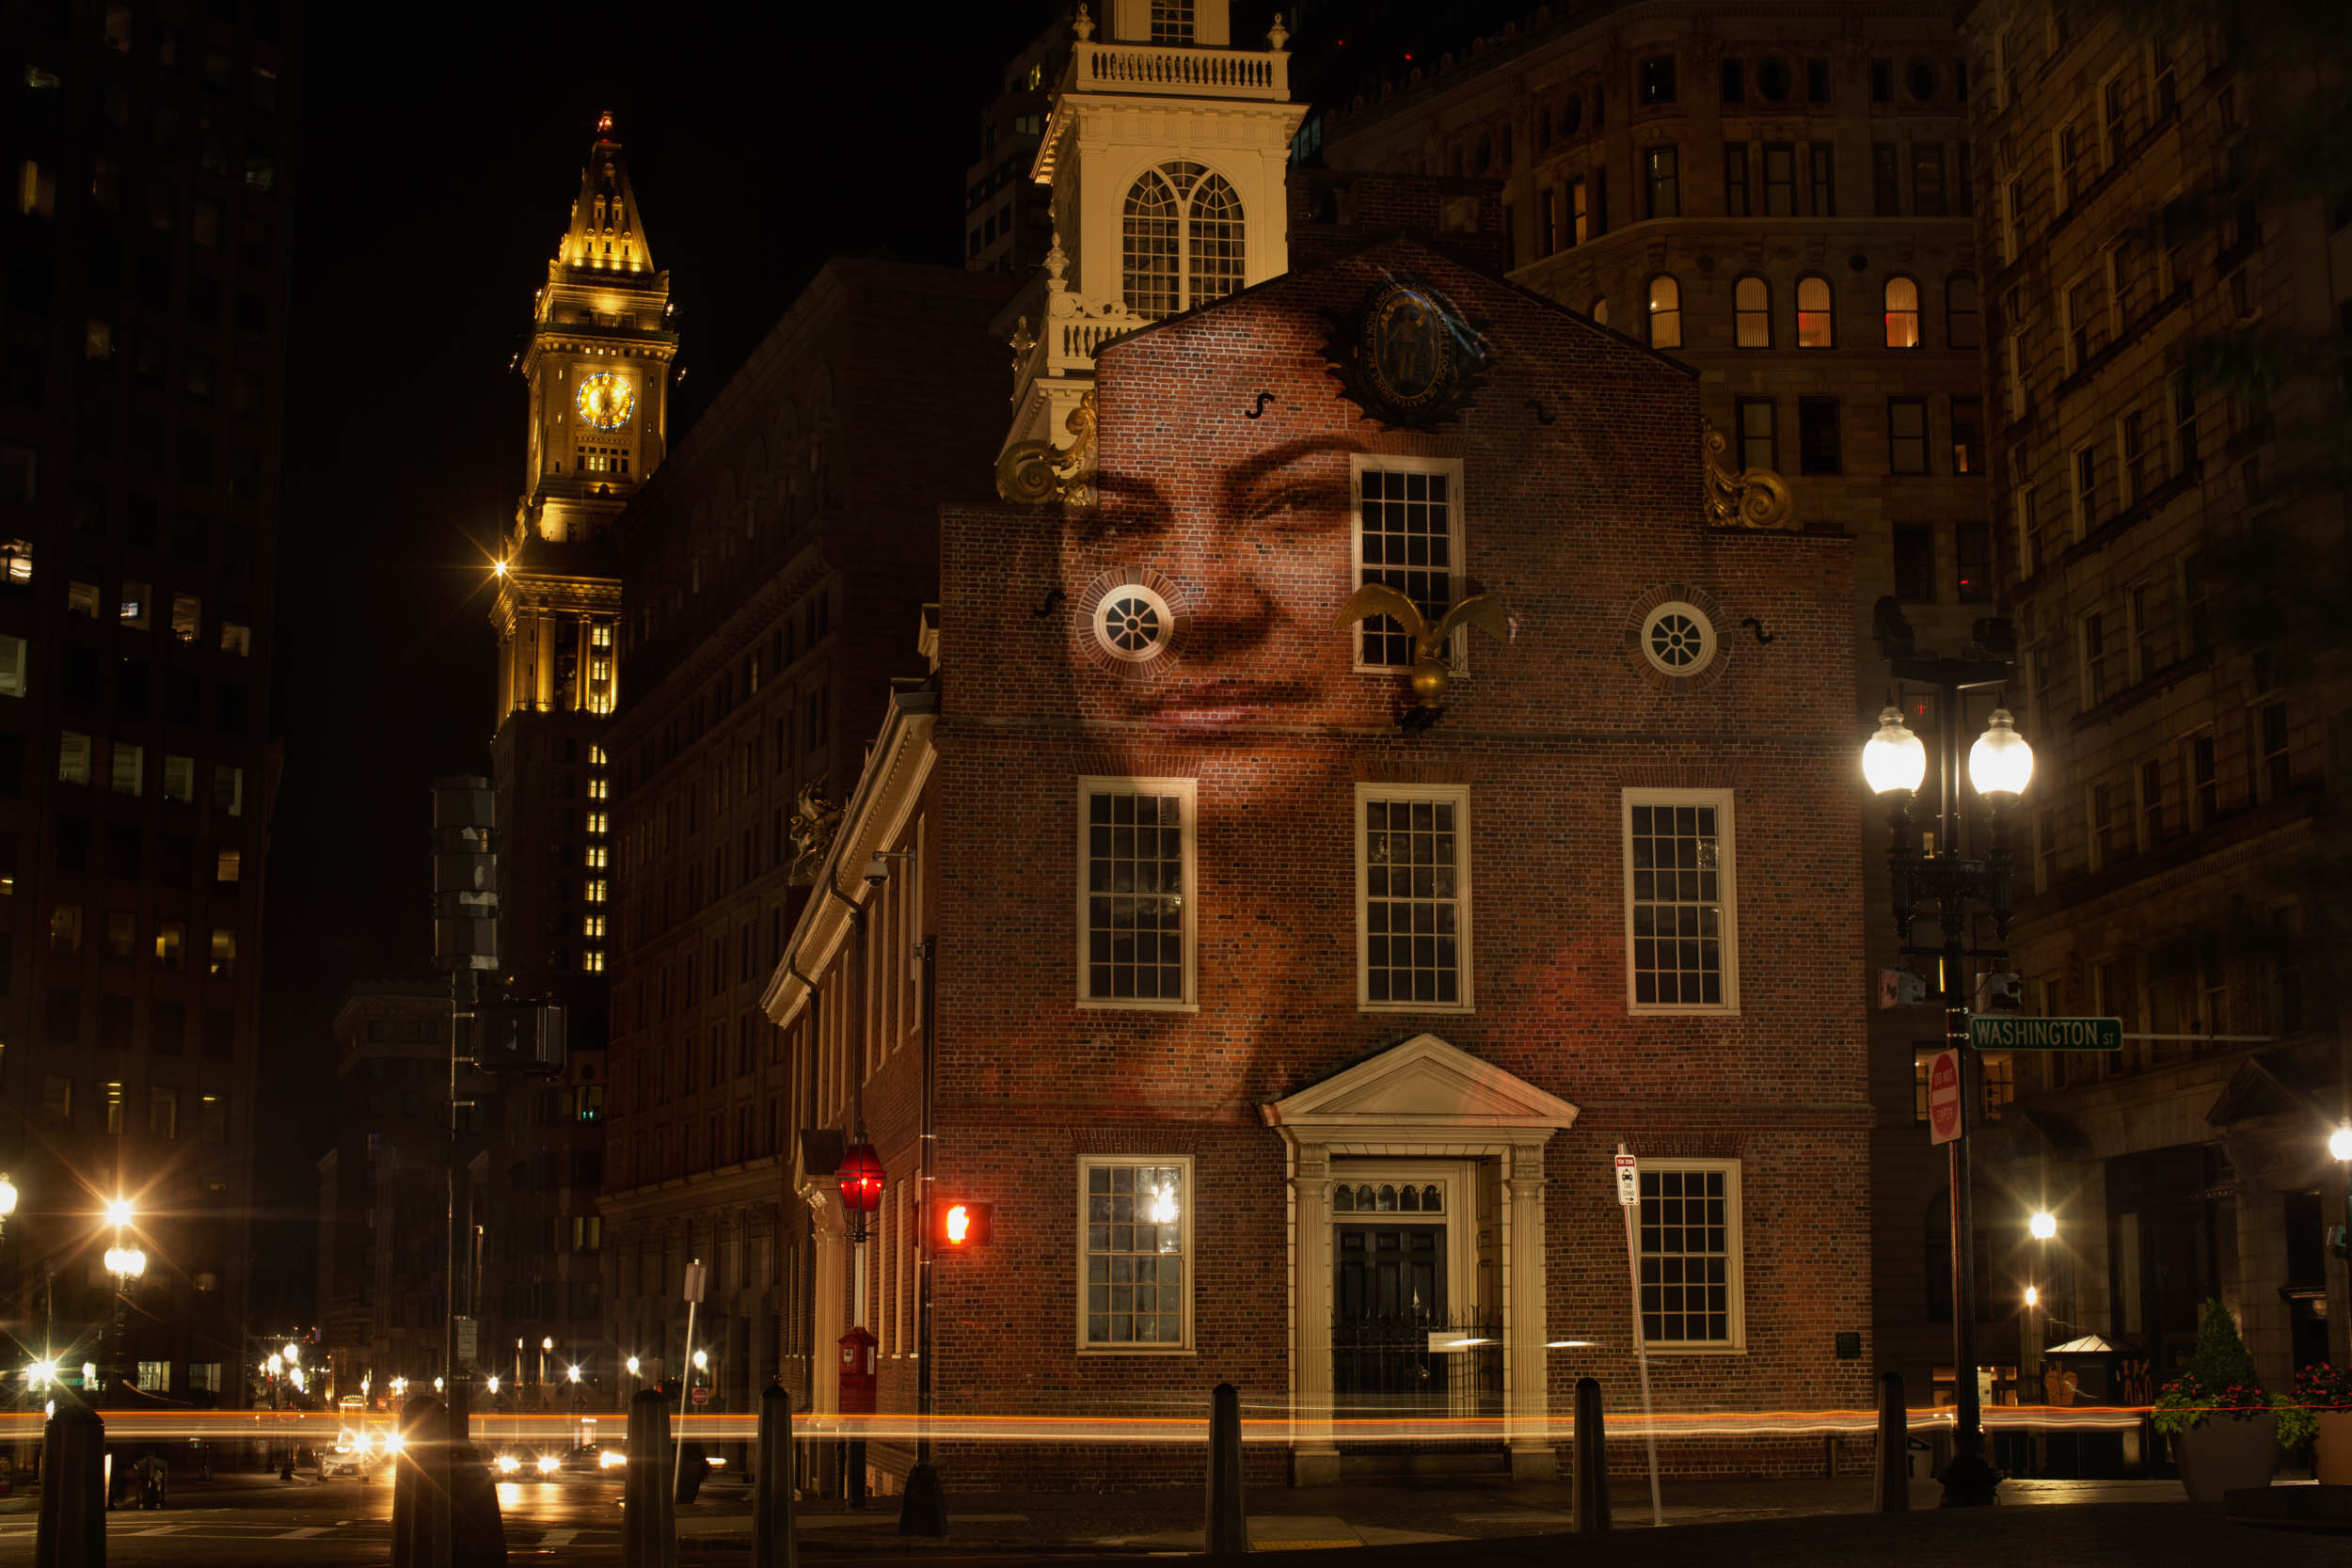 Jennis Perez | Cuba Cleaner - Projected on the Old State House